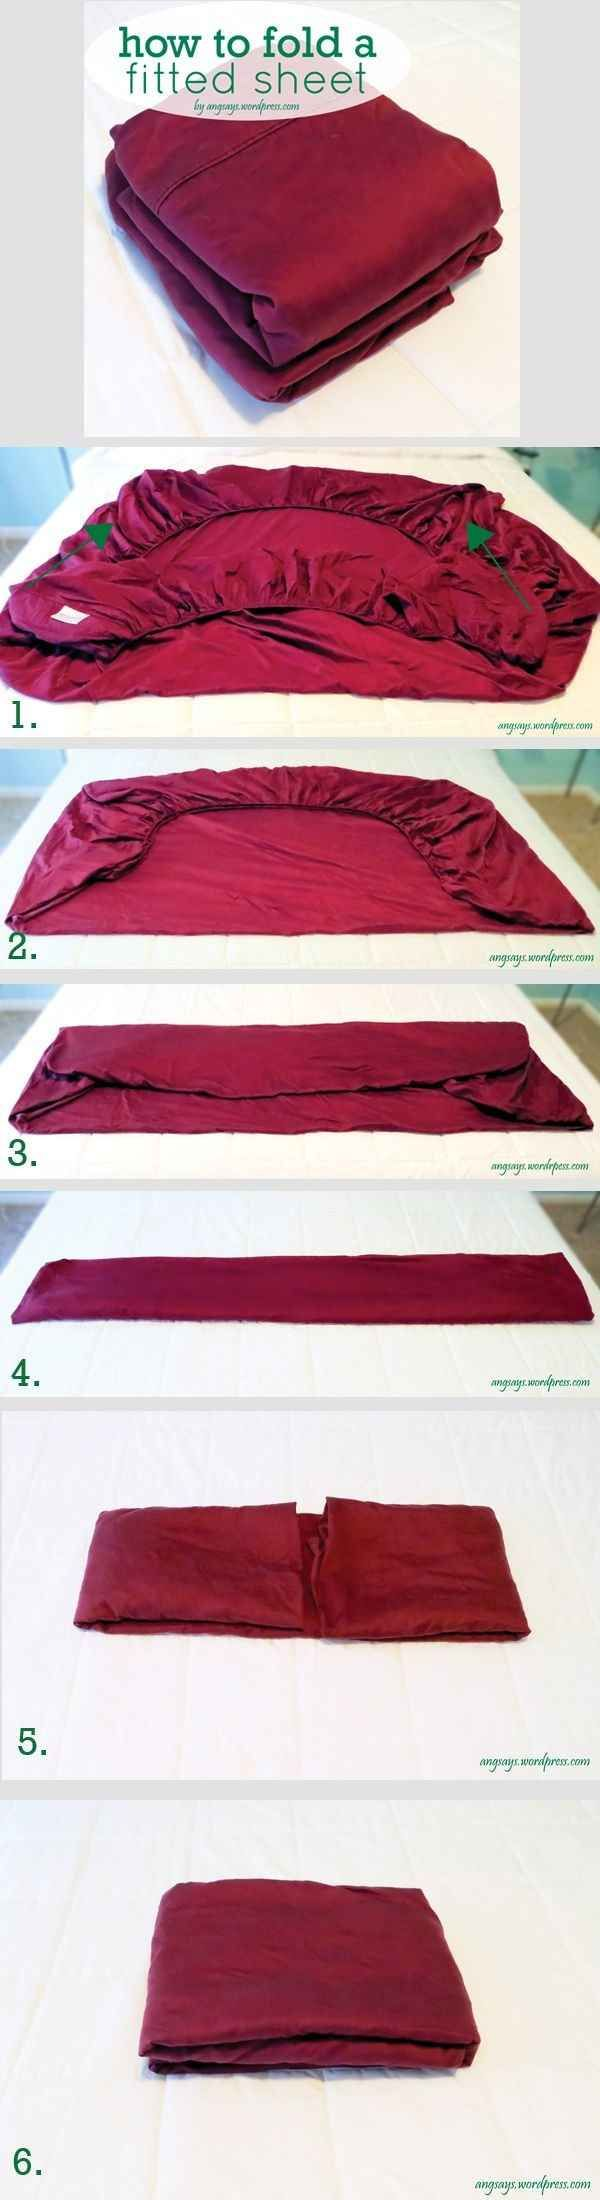 Folding the fitted sheet: something I fail at lol